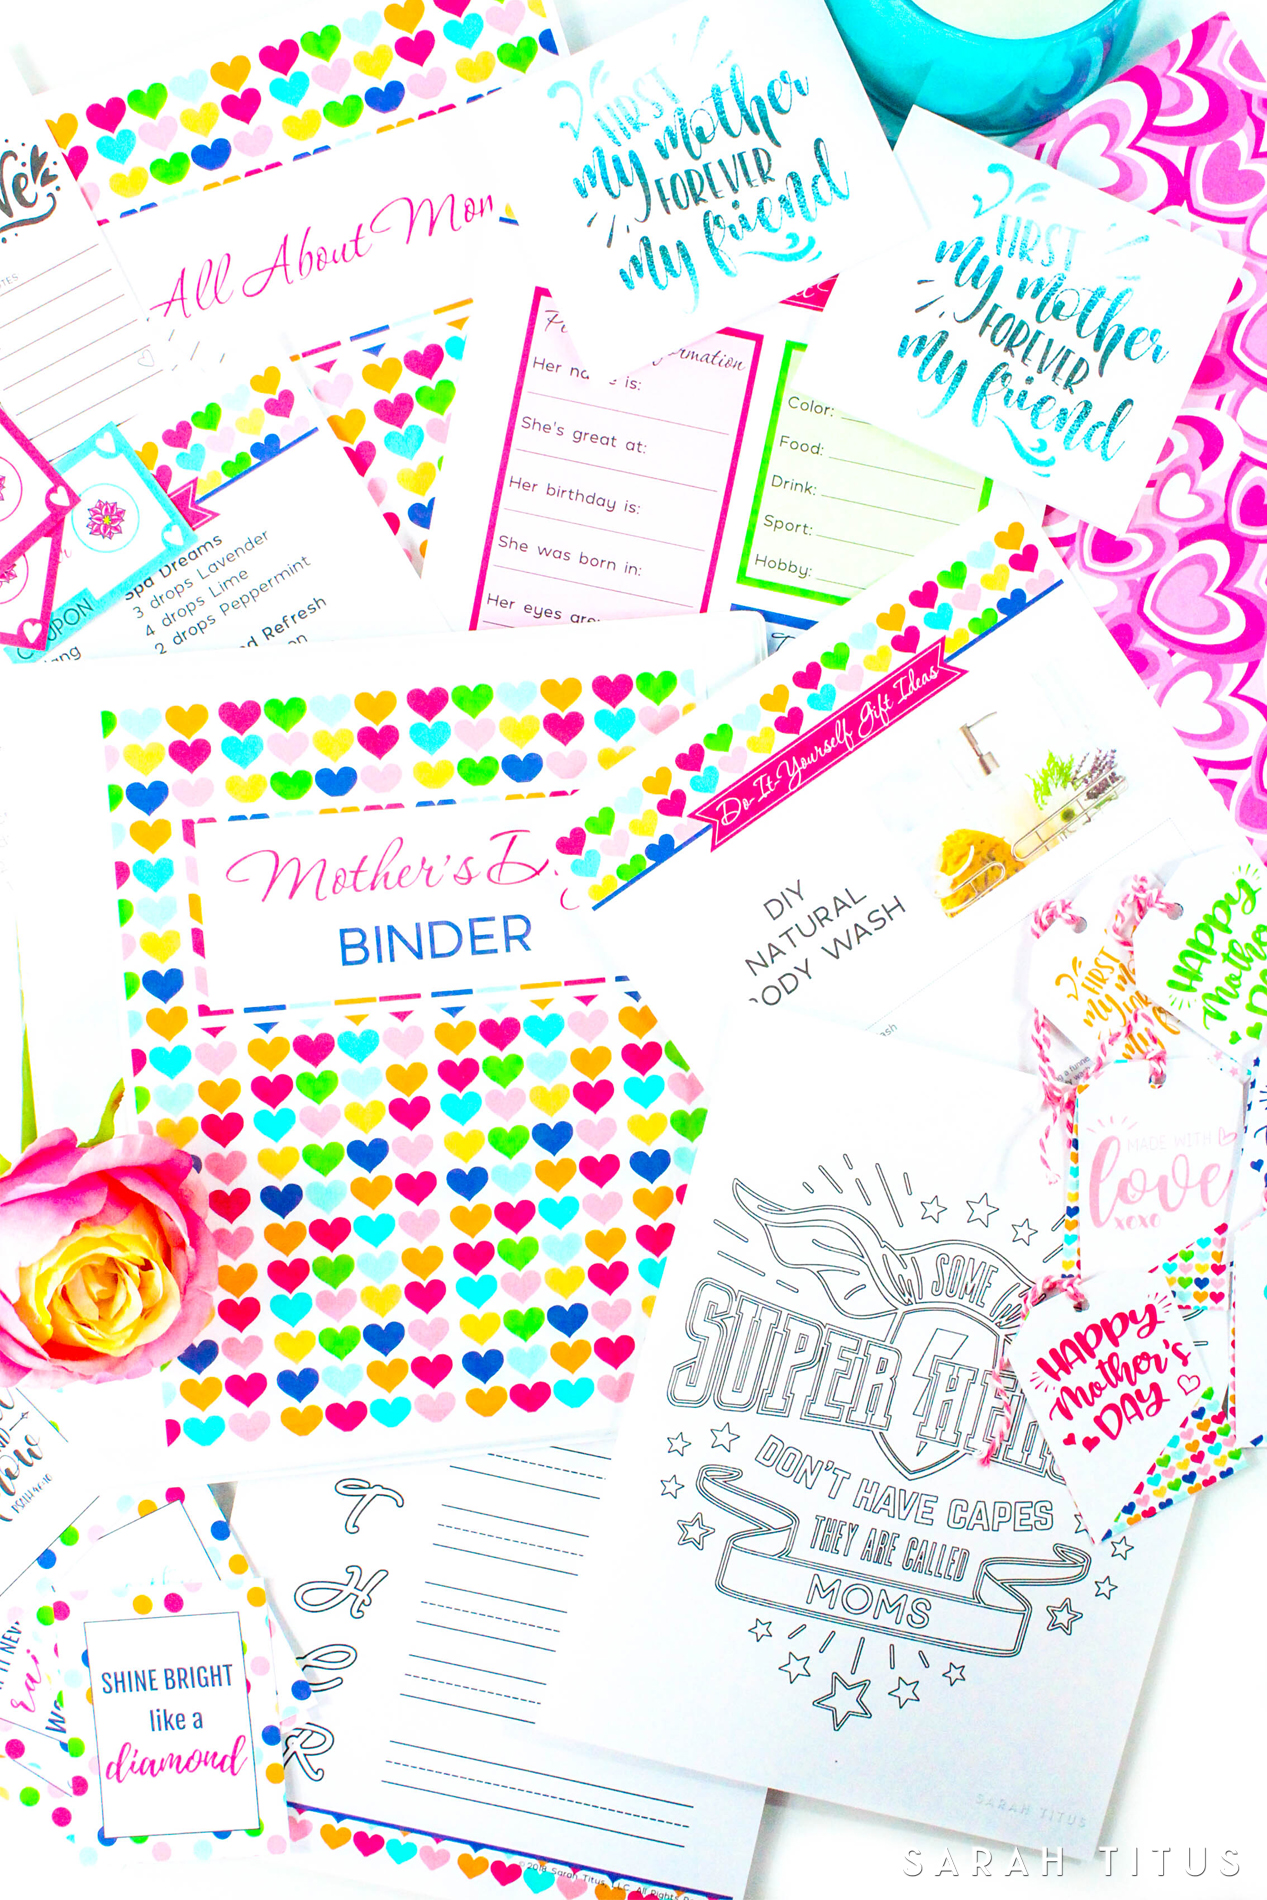 Make Mother's Day extra special for you and your family with the most beautiful and complete binder on the web! This 130+ page Mother's Day Binder includes, gift ideas, DIY gift ideas, party planner, gift tags, wall arts, activities you can do that day and so much more!